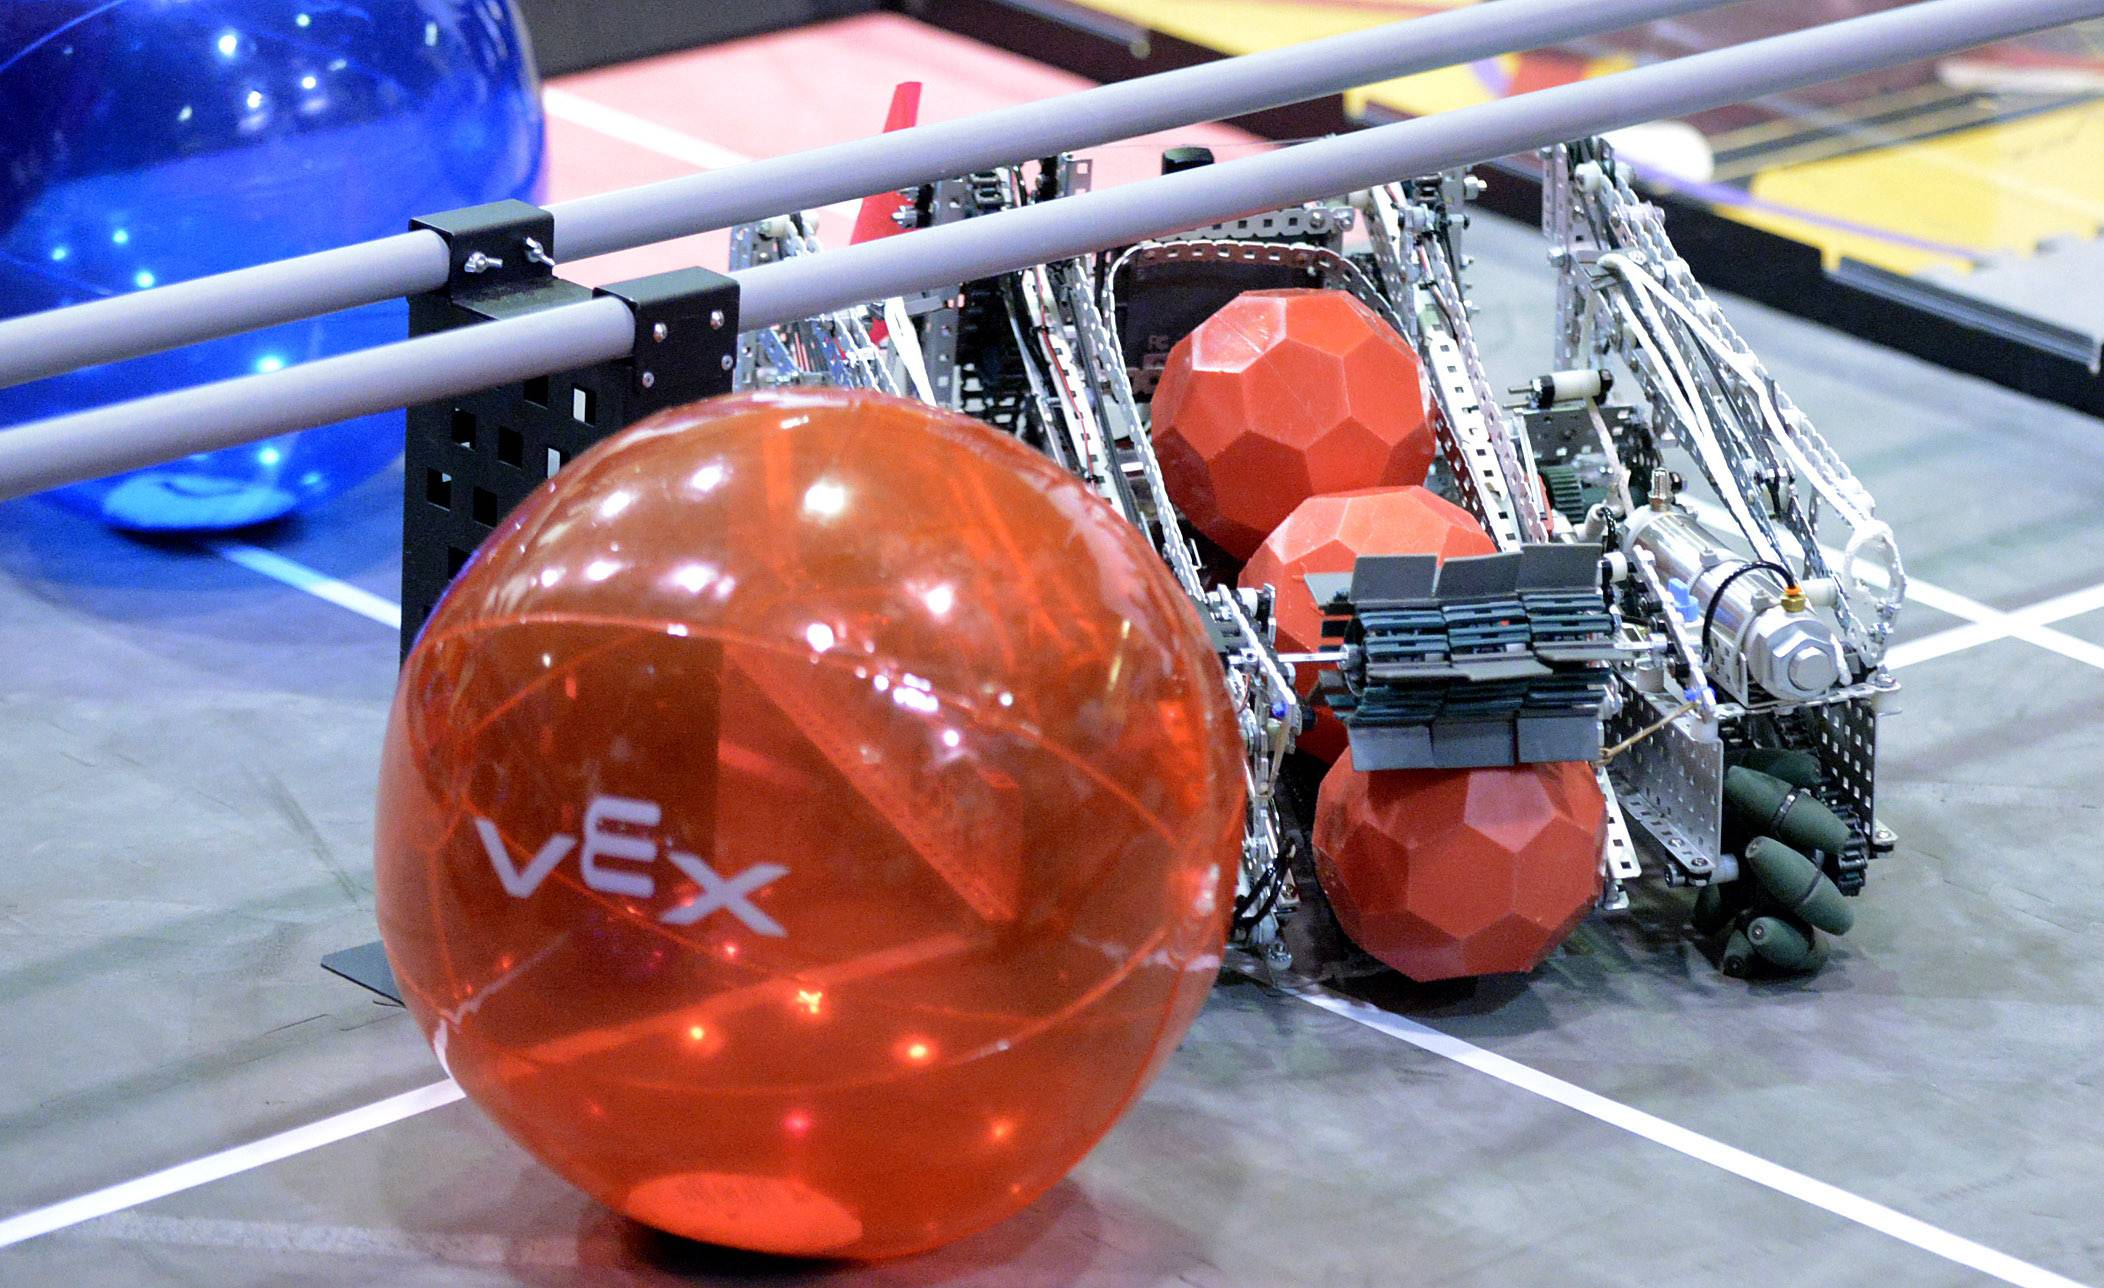 The robot from team Cobalt of the Fox Valley Robotics group out of Batavia gathers small plastic balls using a paddle, which then were carried across the mat to be deposited in a tall container during a first-round match in the Illinois VEX Robotics state championship at Batavia Middle School on Saturday, March 7.